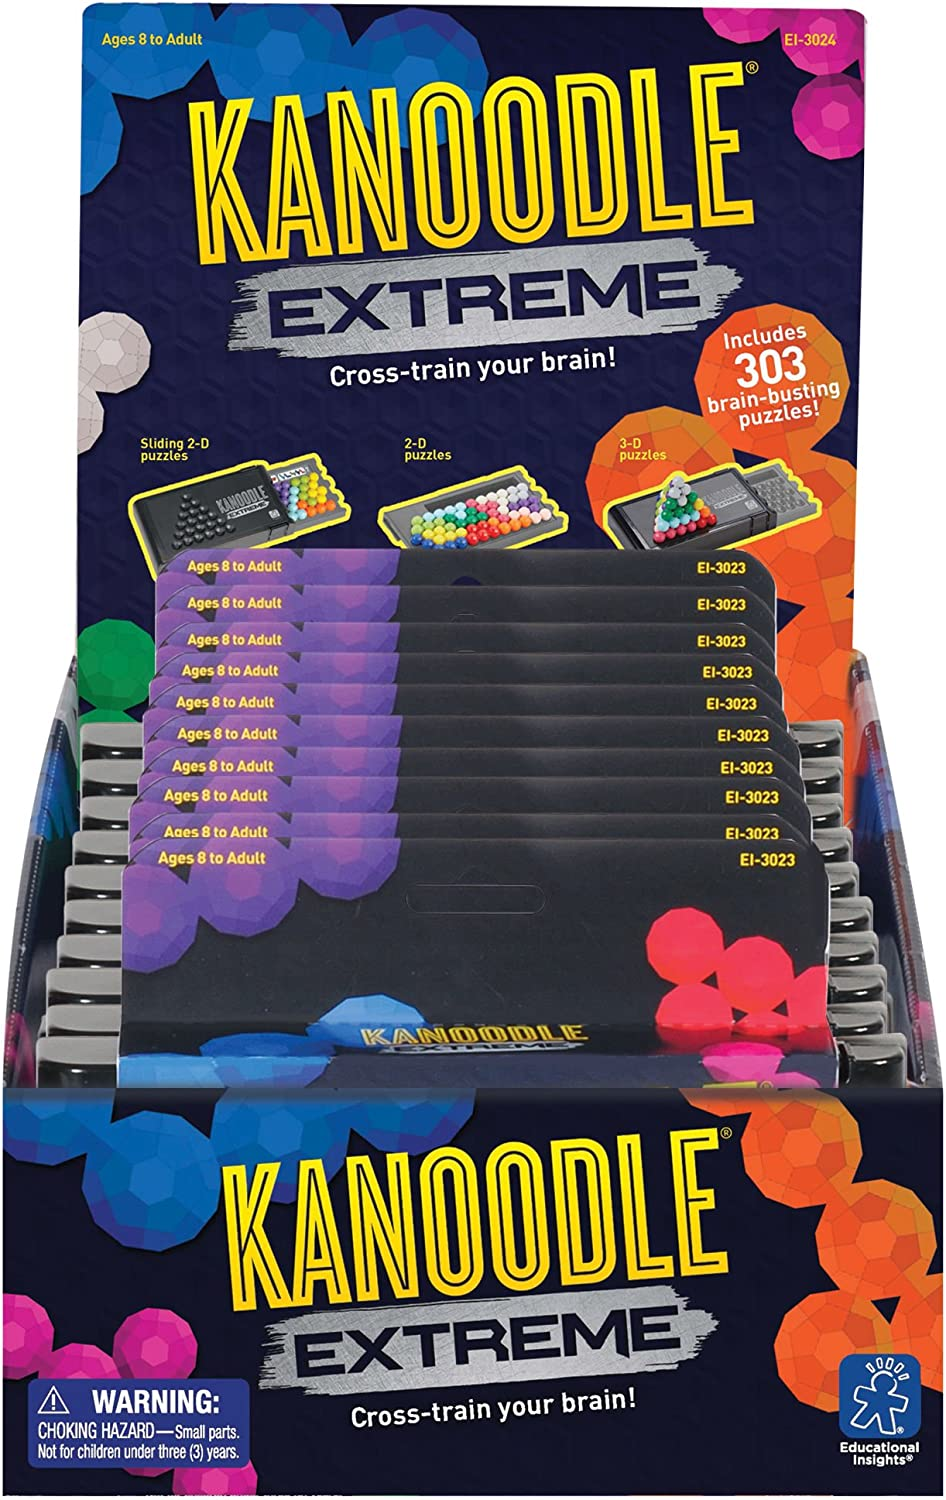 Educational Insights Kanoodle Extreme Party Pack of 10, Ages 8 and up, 303 Brain-tickling Puzzles